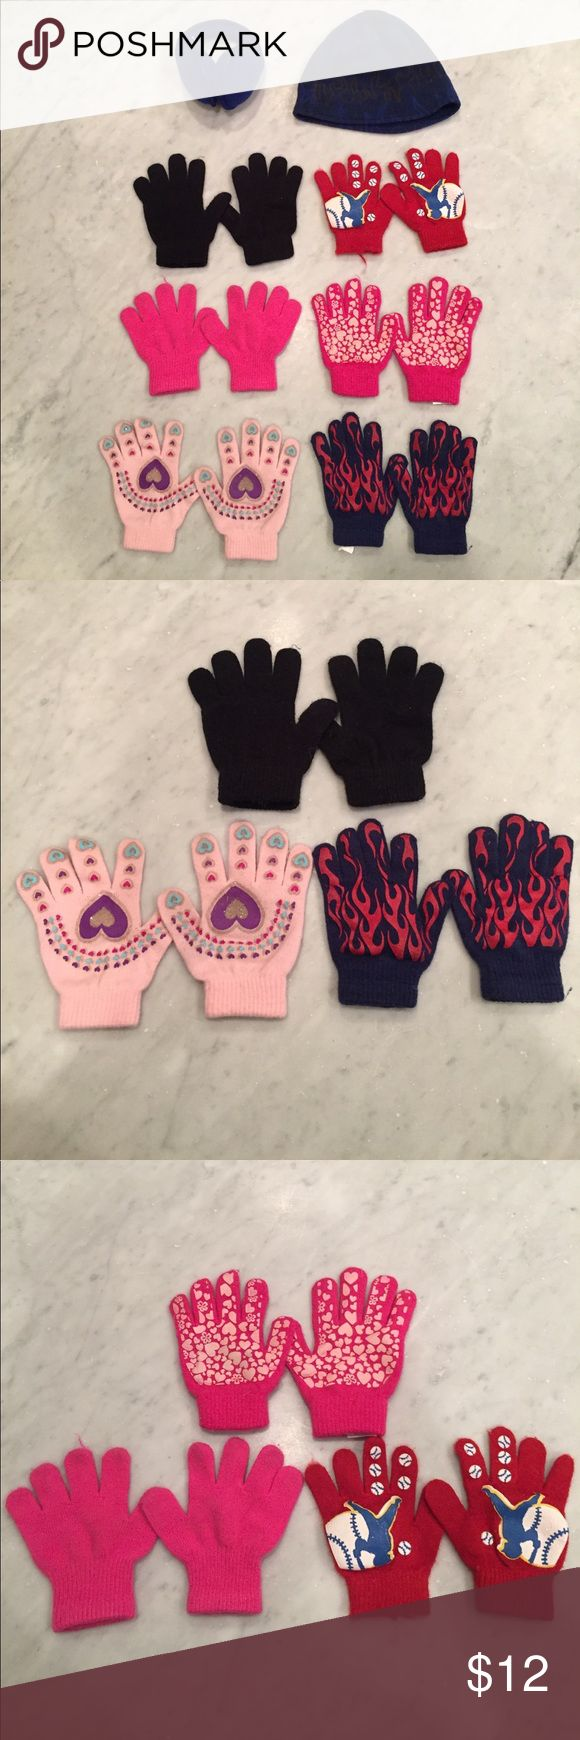 lot of childrens winter gloves, a hat, & ear muffs 6 pairs of childrens gloves, a child sized hat, and child sized gloves. Worn but in good condition. The pink gloves show the most wear. Accessories Mittens